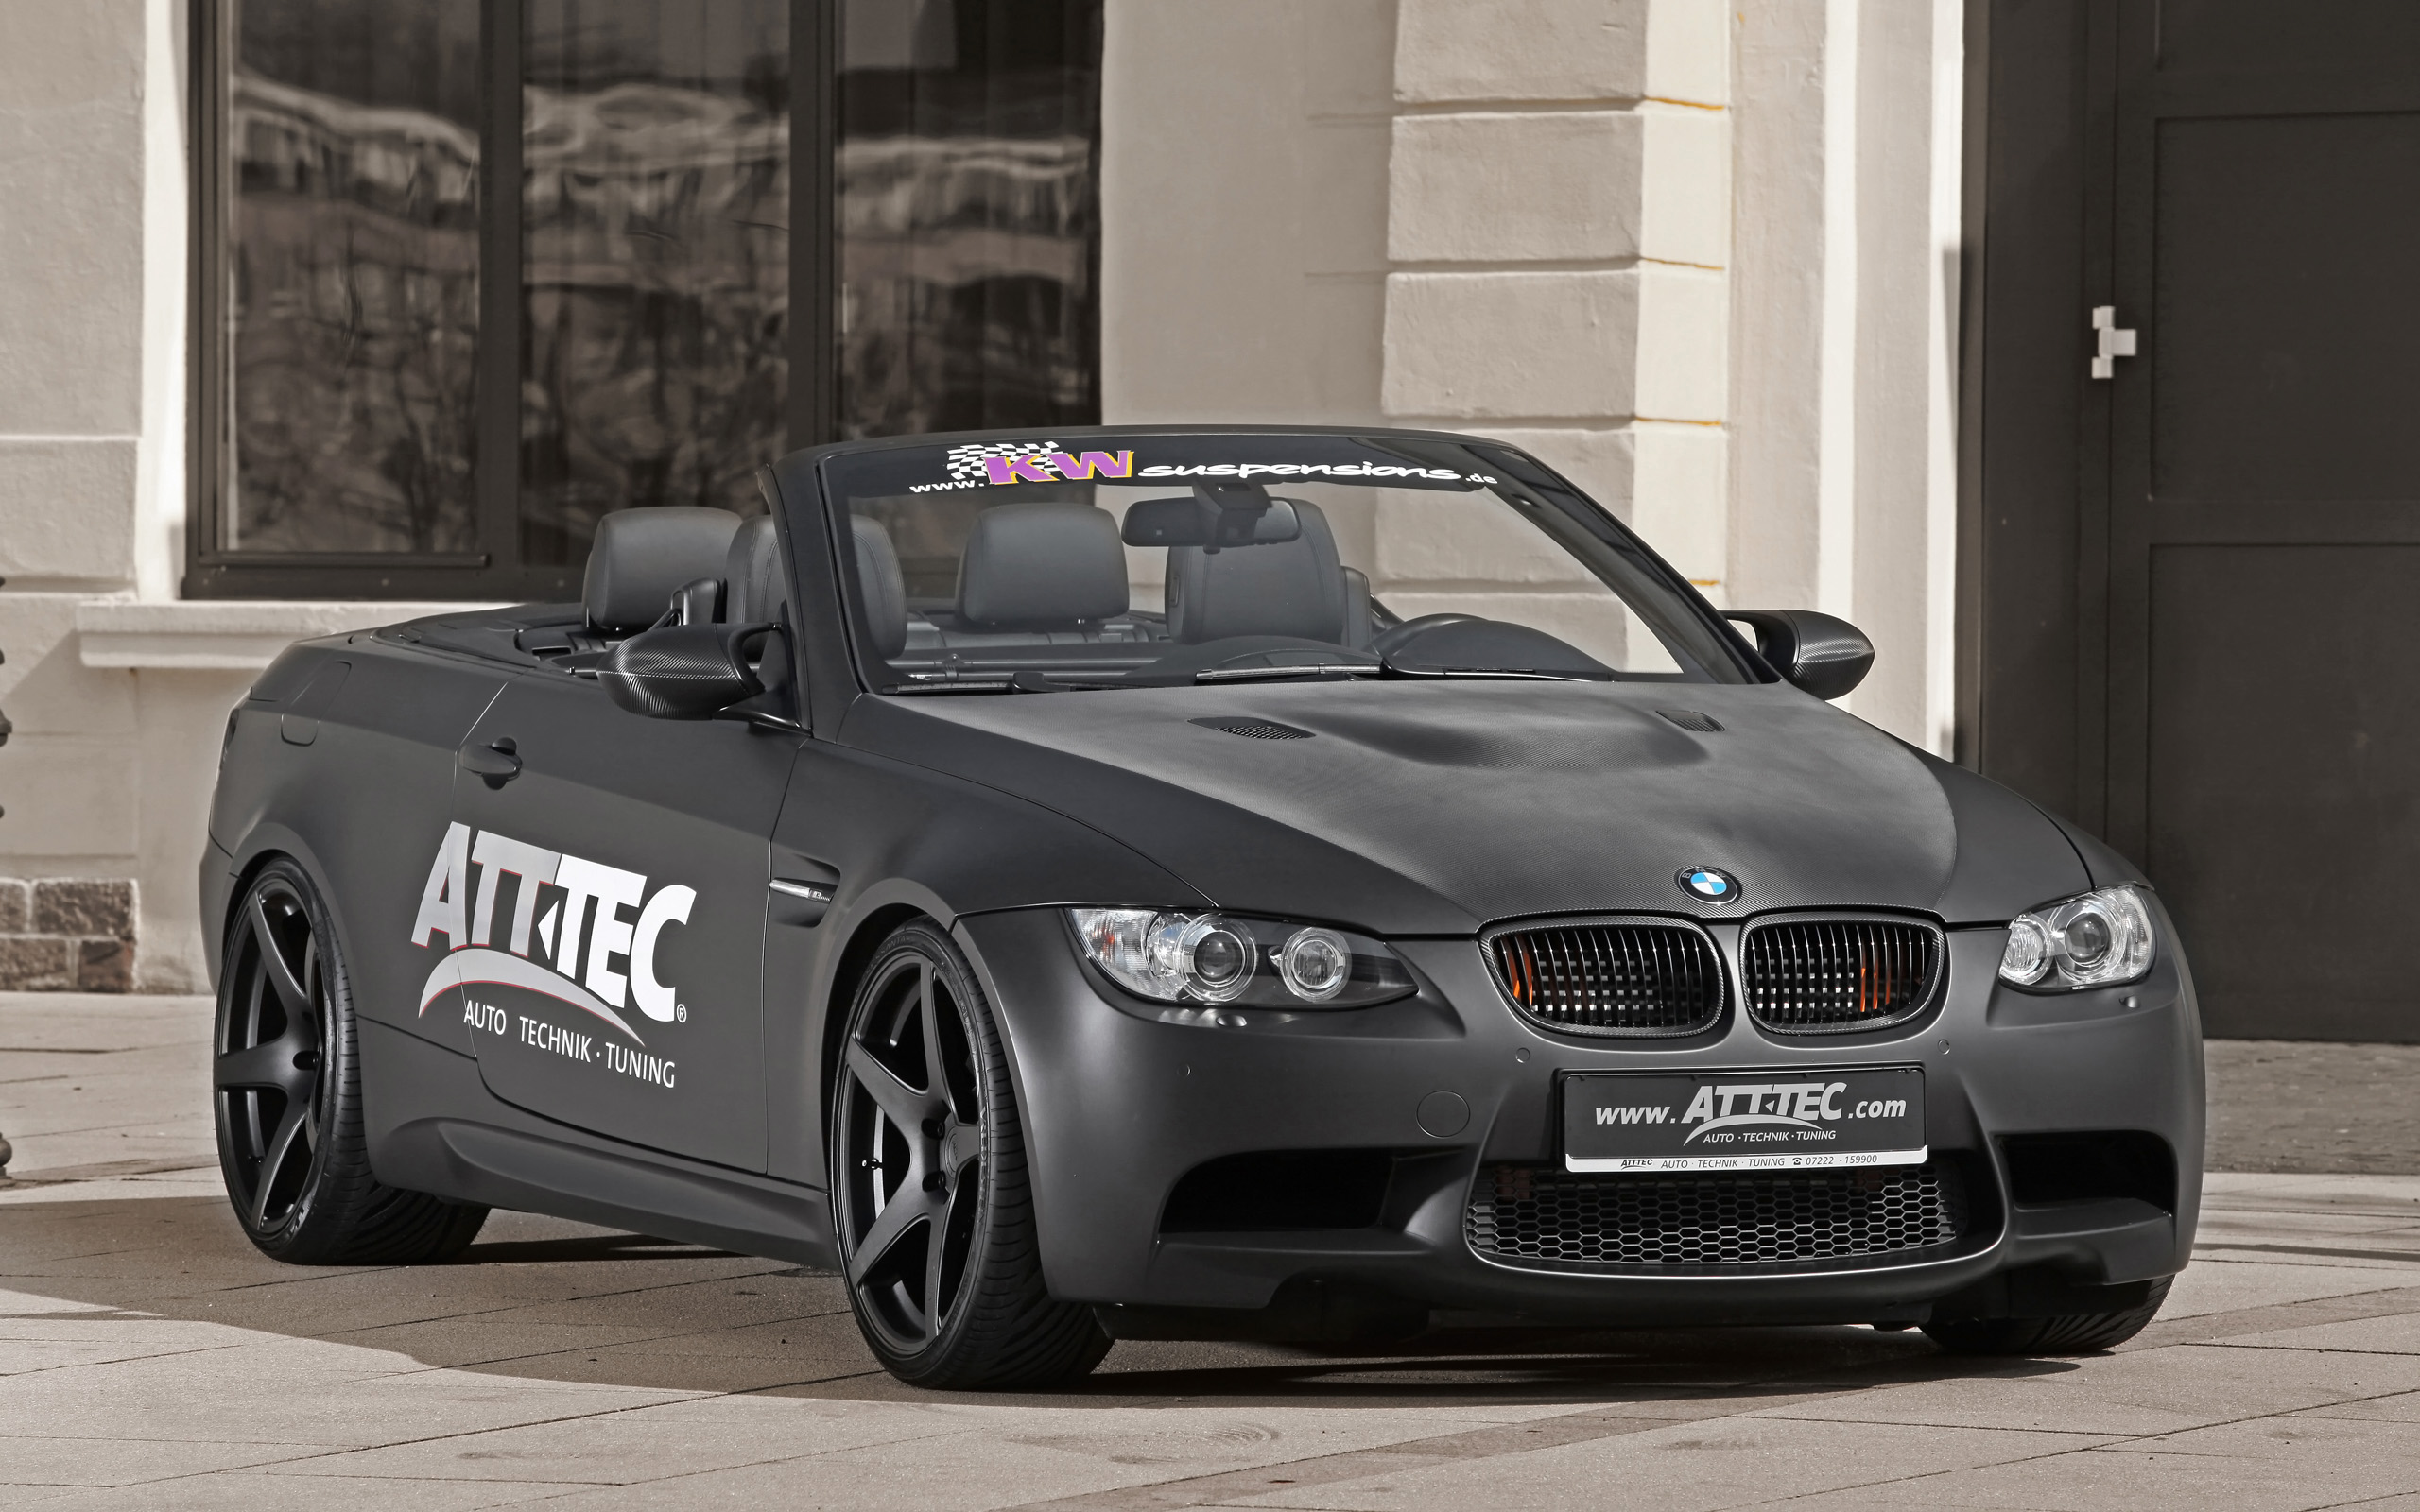 2012 BMW M3 By ATT TEC Wallpaper | HD Car Wallpapers